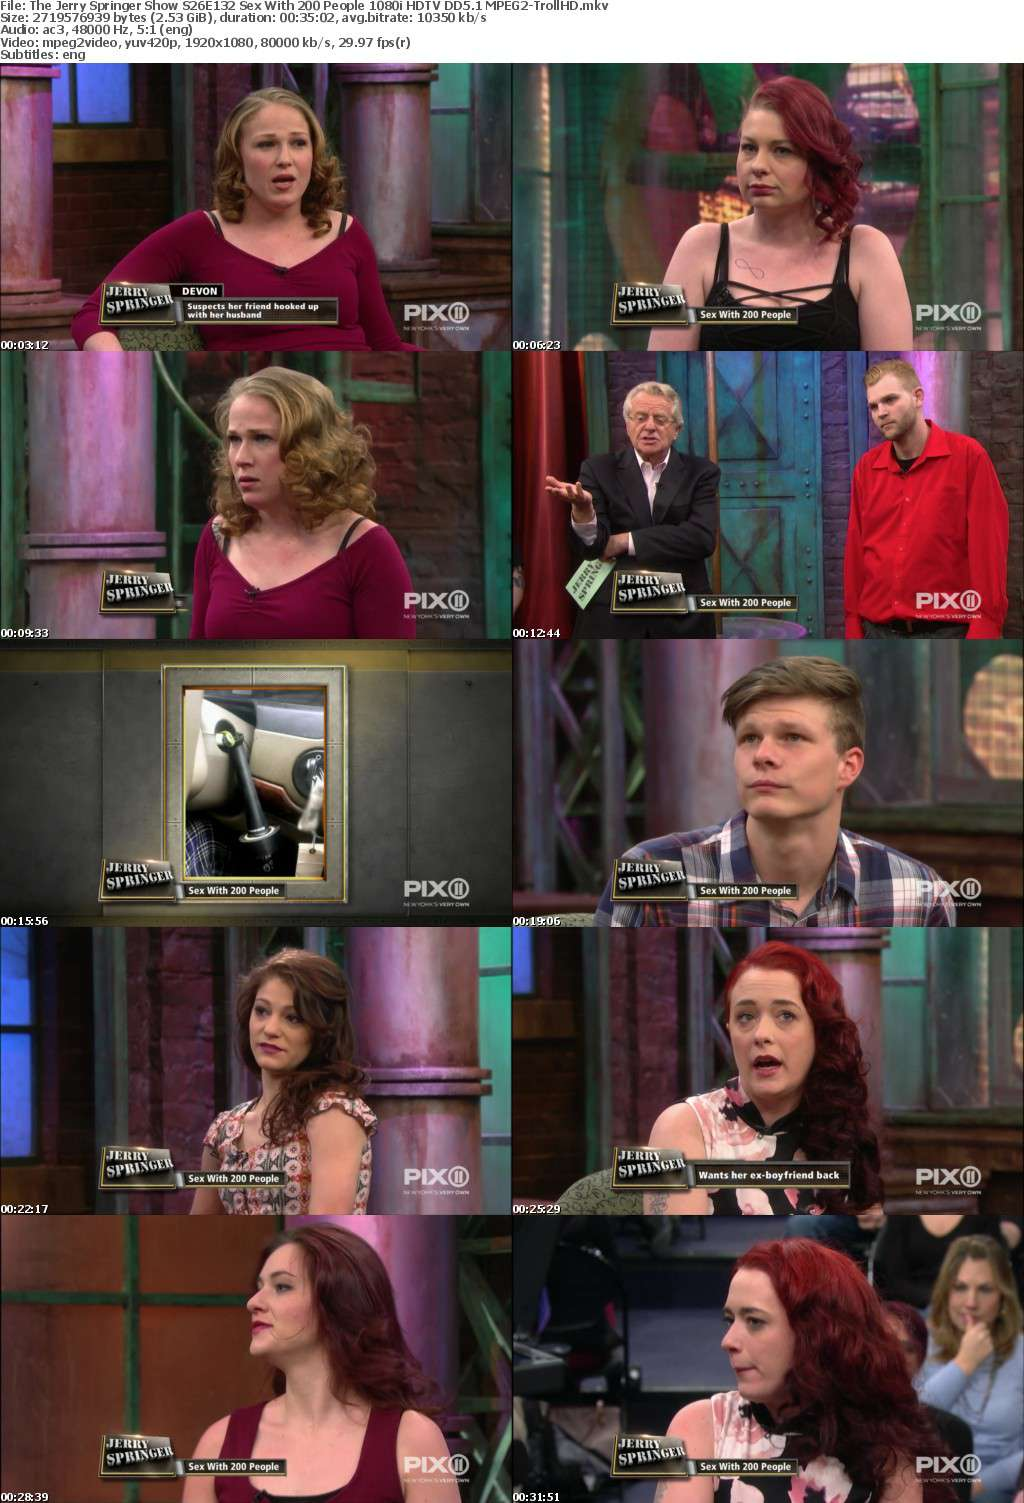 The Jerry Springer Show S26E132 Sex With 200 People 1080i HDTV DD5 1 MPEG2-TrollHD - MPEG2